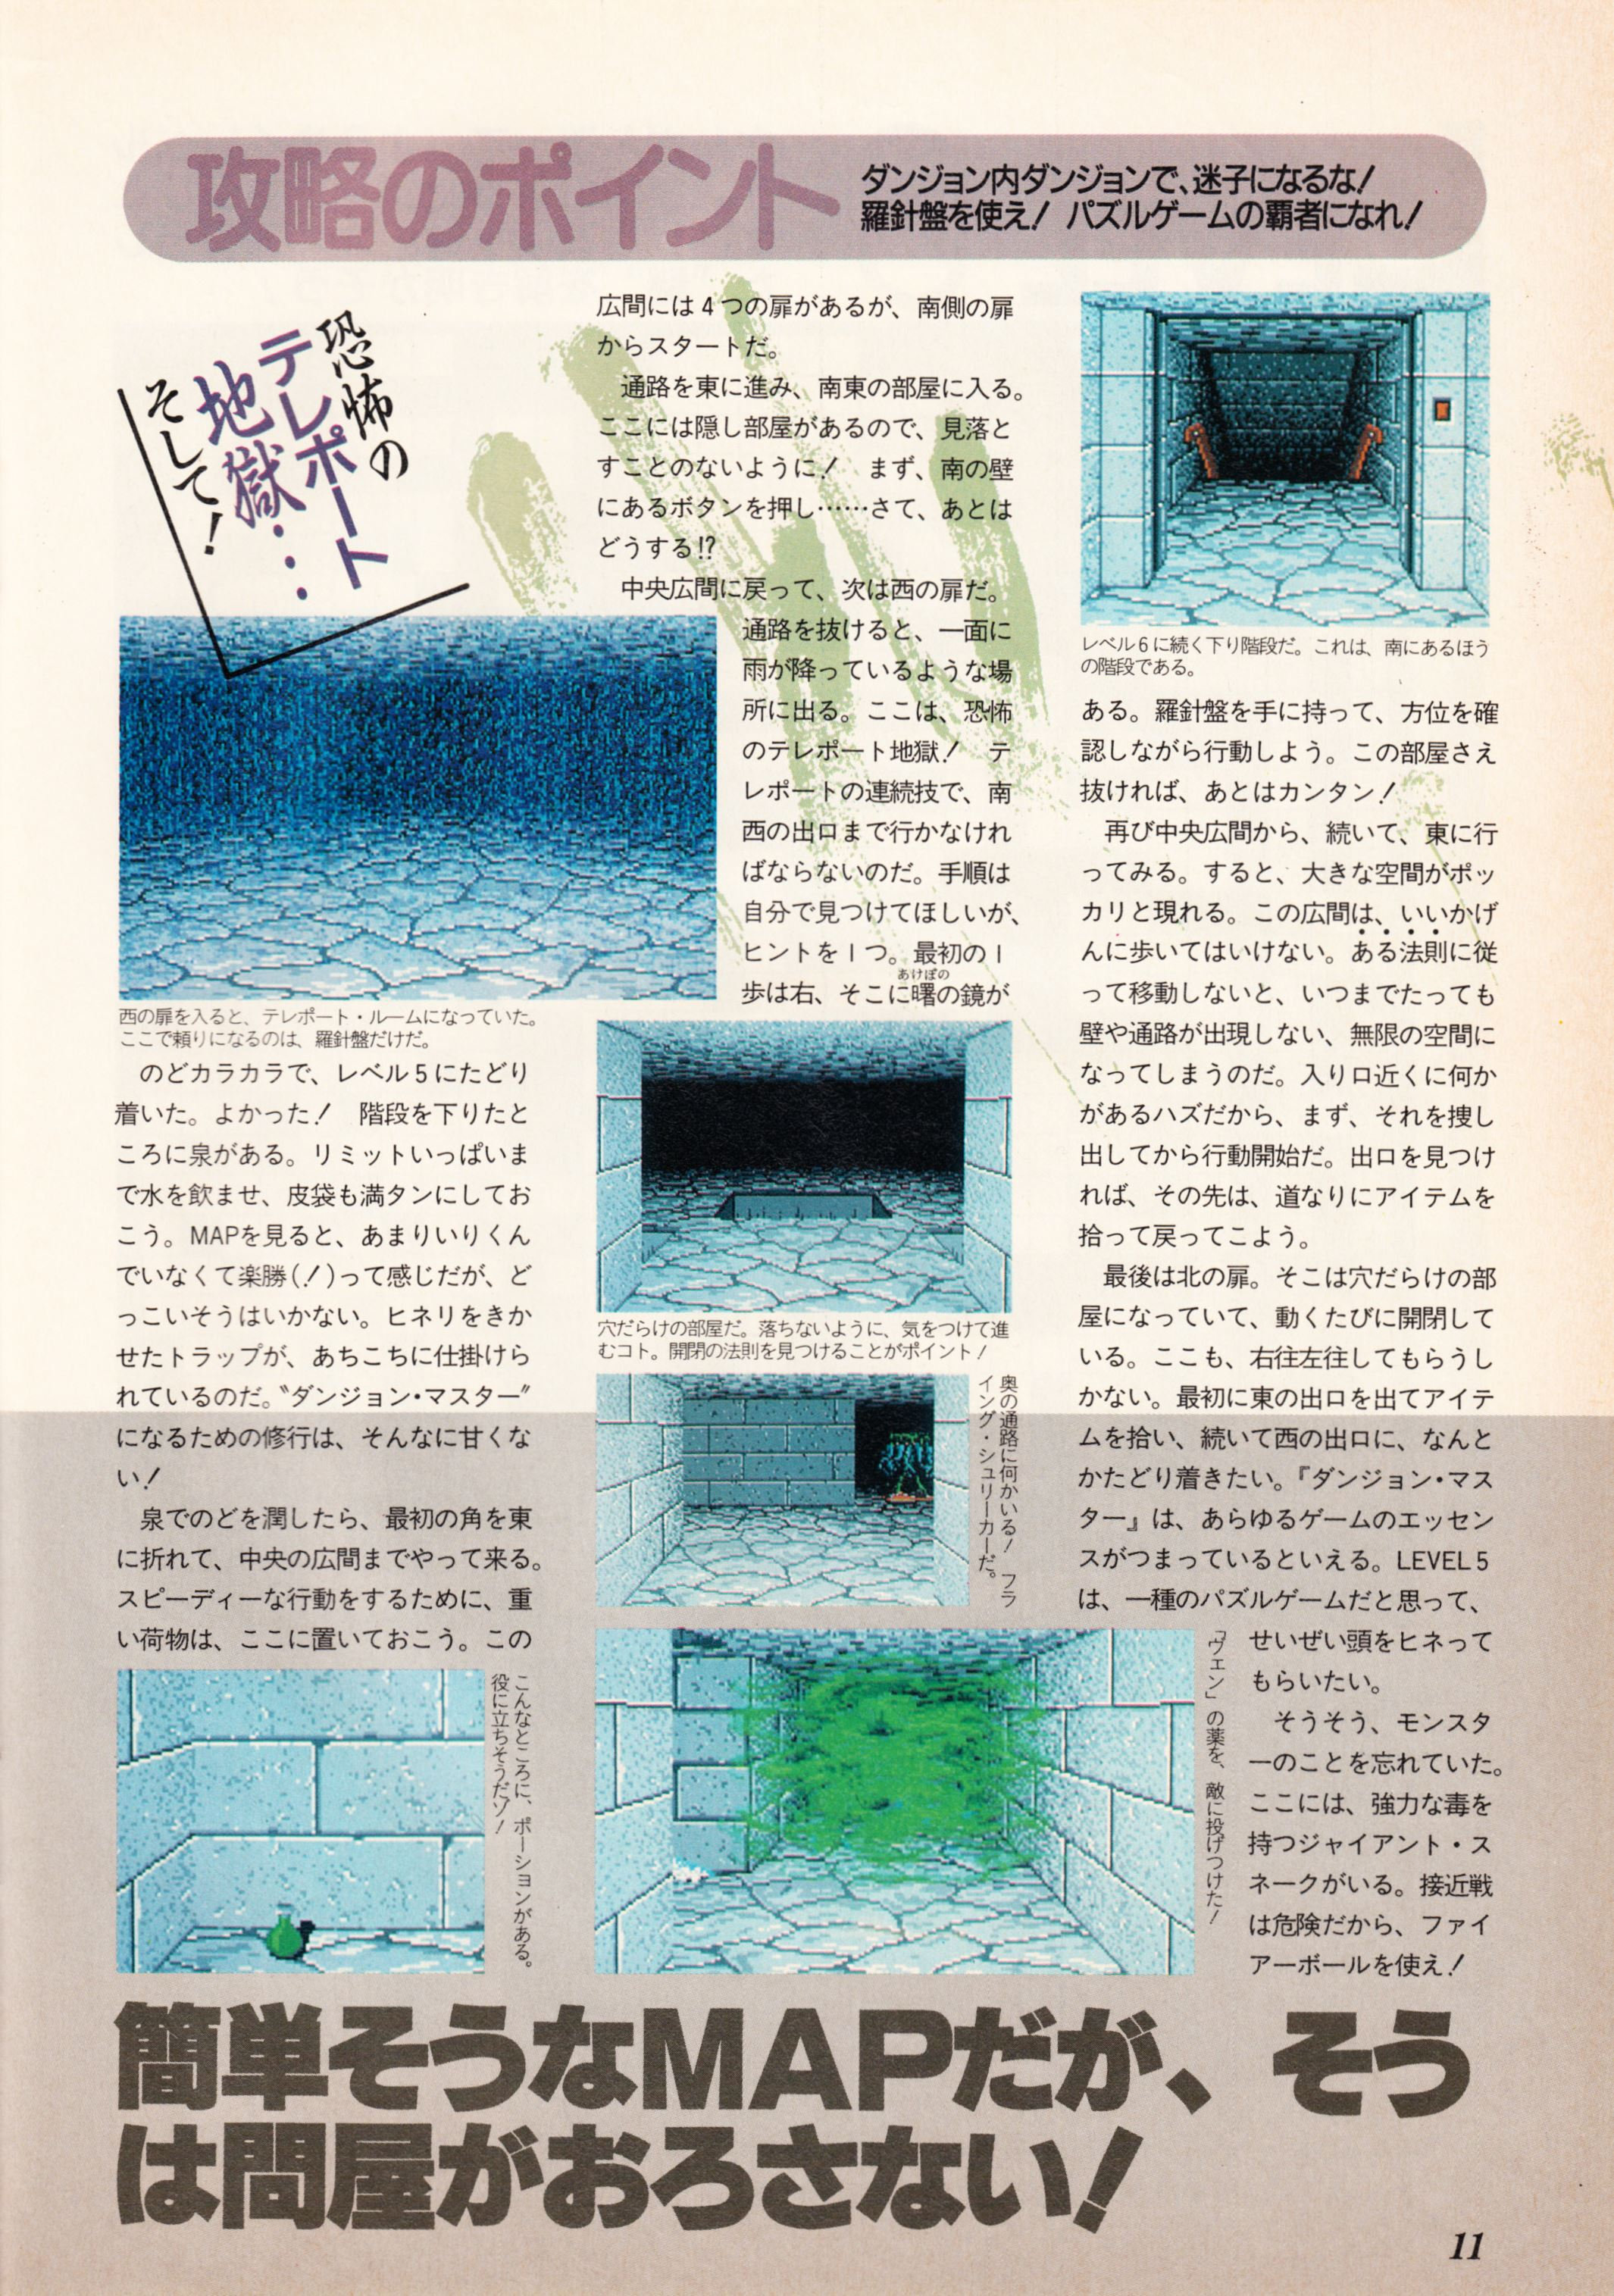 Supplement - Dungeon Master Companion Manual Guide published in Japanese magazine 'Popcom', Vol 4 No 1 01 April 1990, Page 13